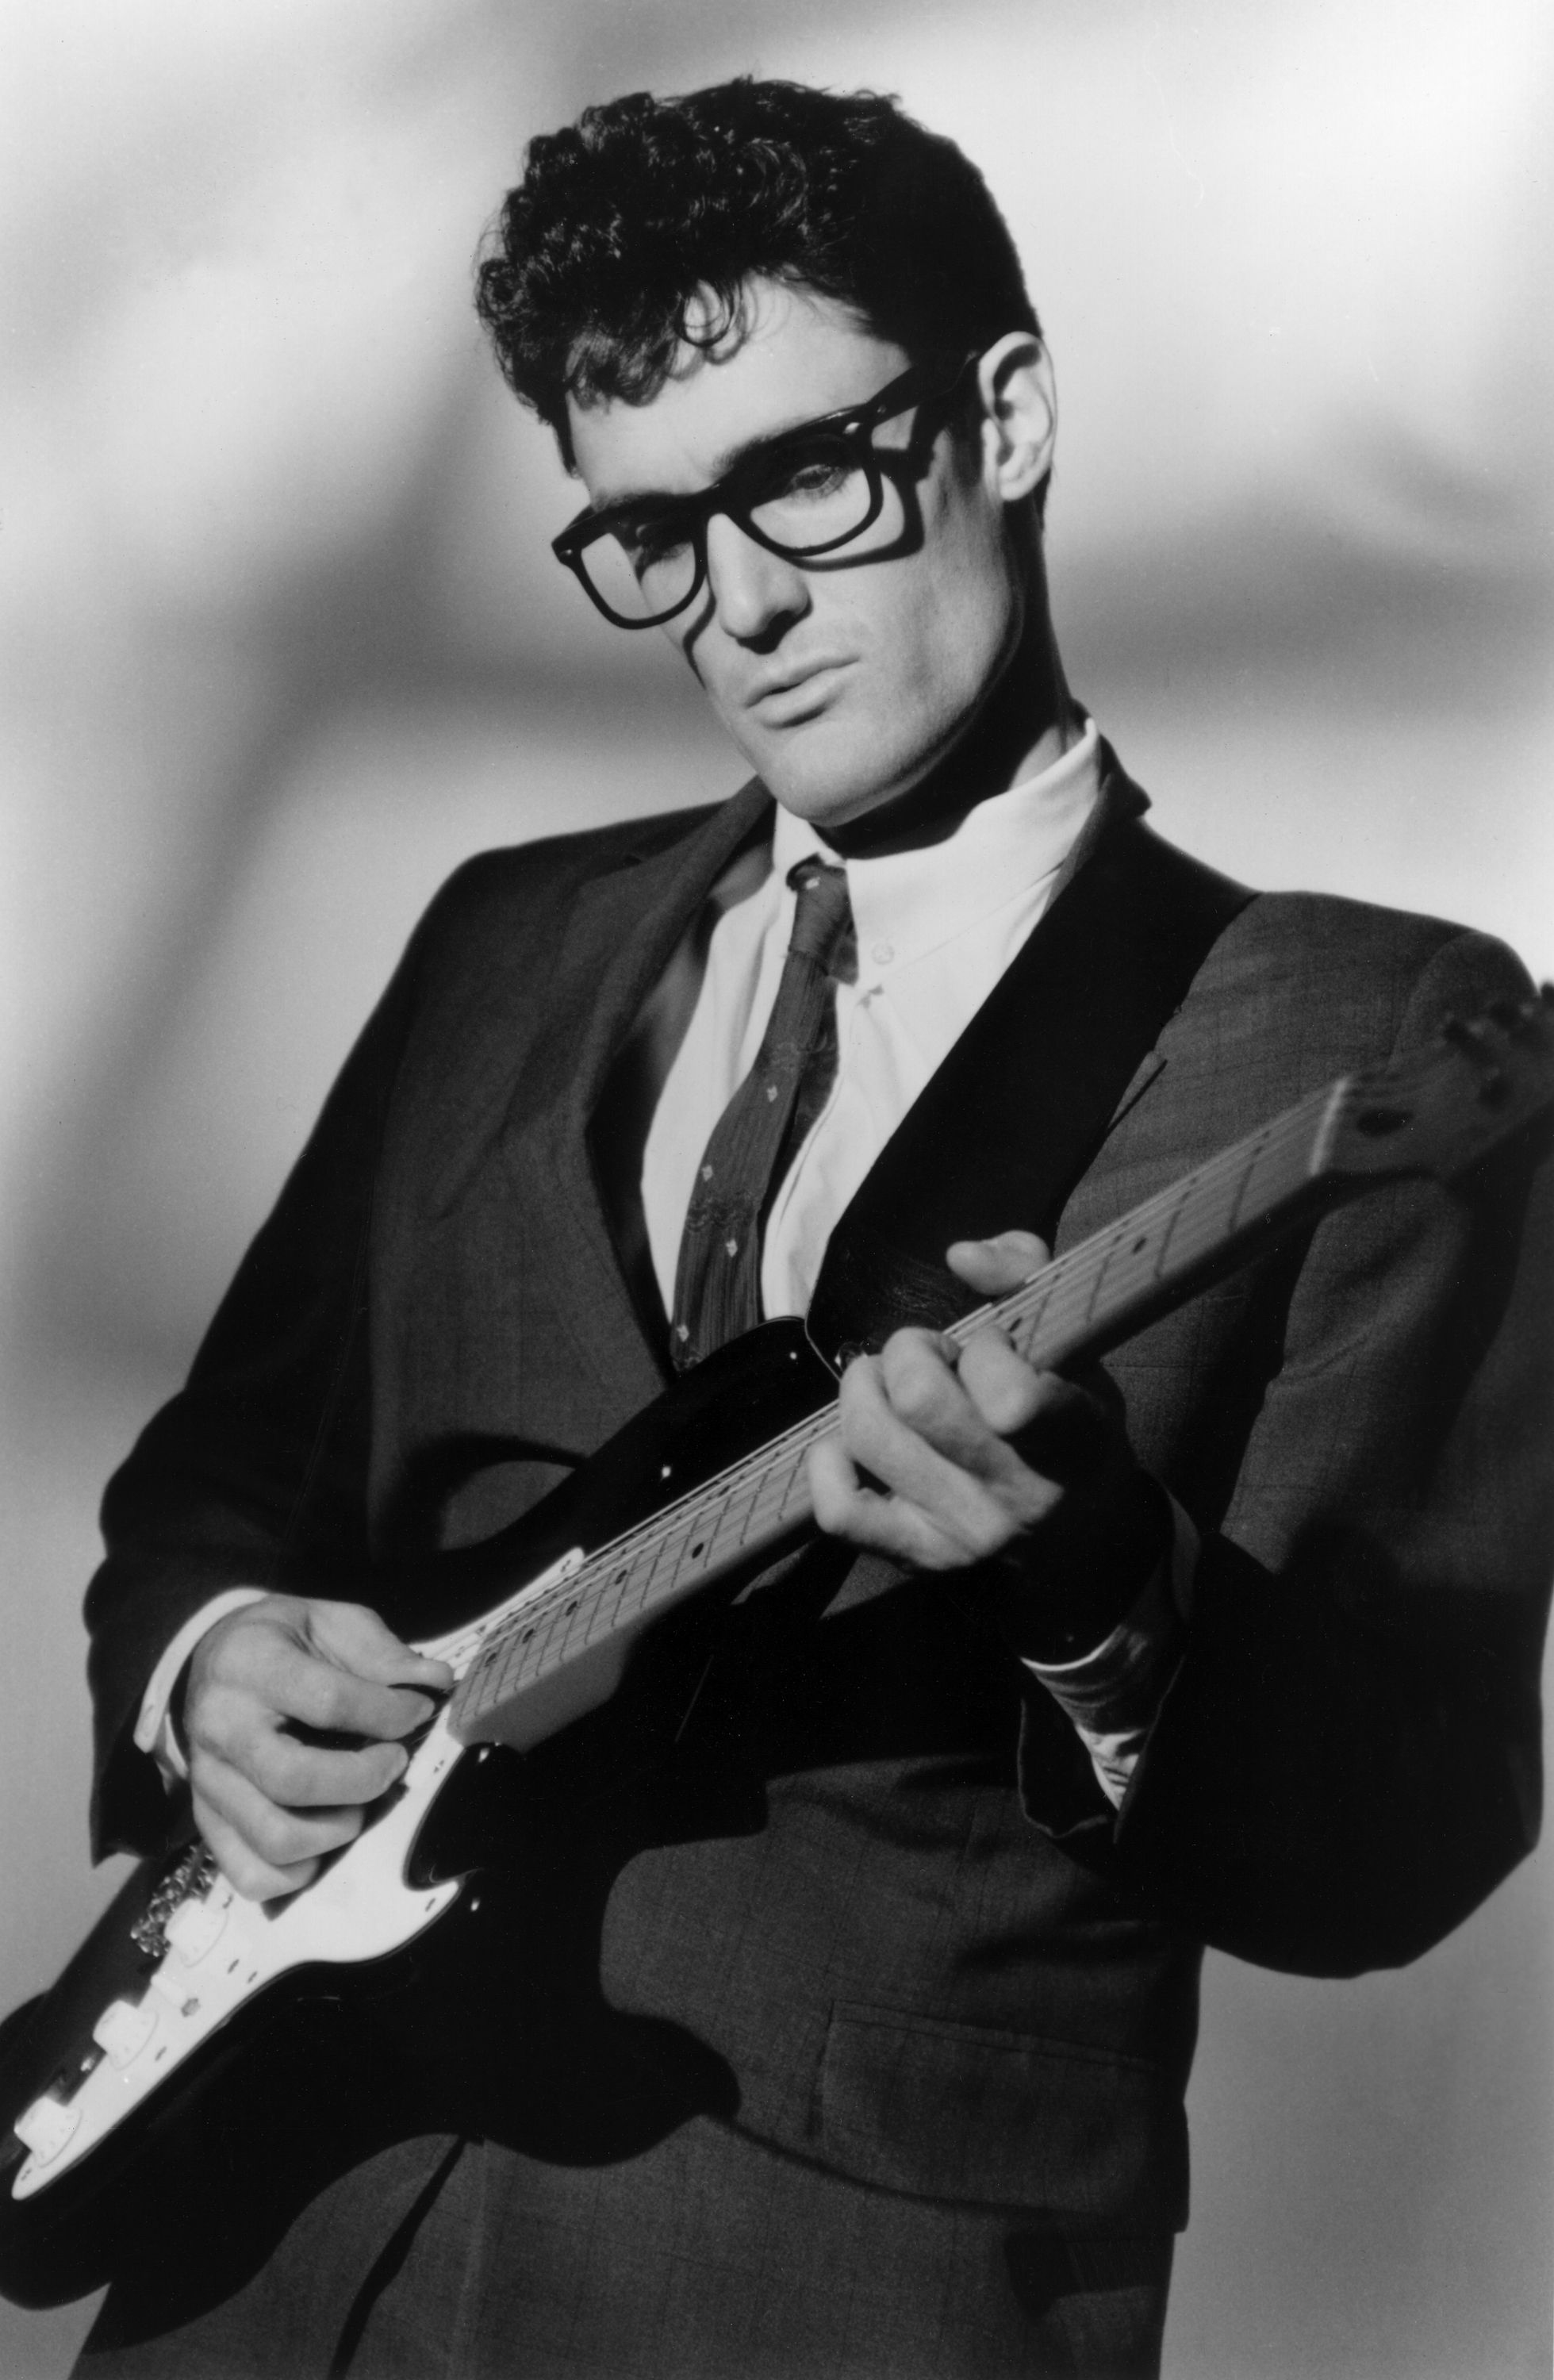 Buddy Holly - Birth name Charles Hardin Holley Born September 7, 1936 Lubbock, Texas, U.S. Died February 3, 1959 (aged 22) Grant Township, Cerro Gordo County, Iowa, U.S. in a plane crash